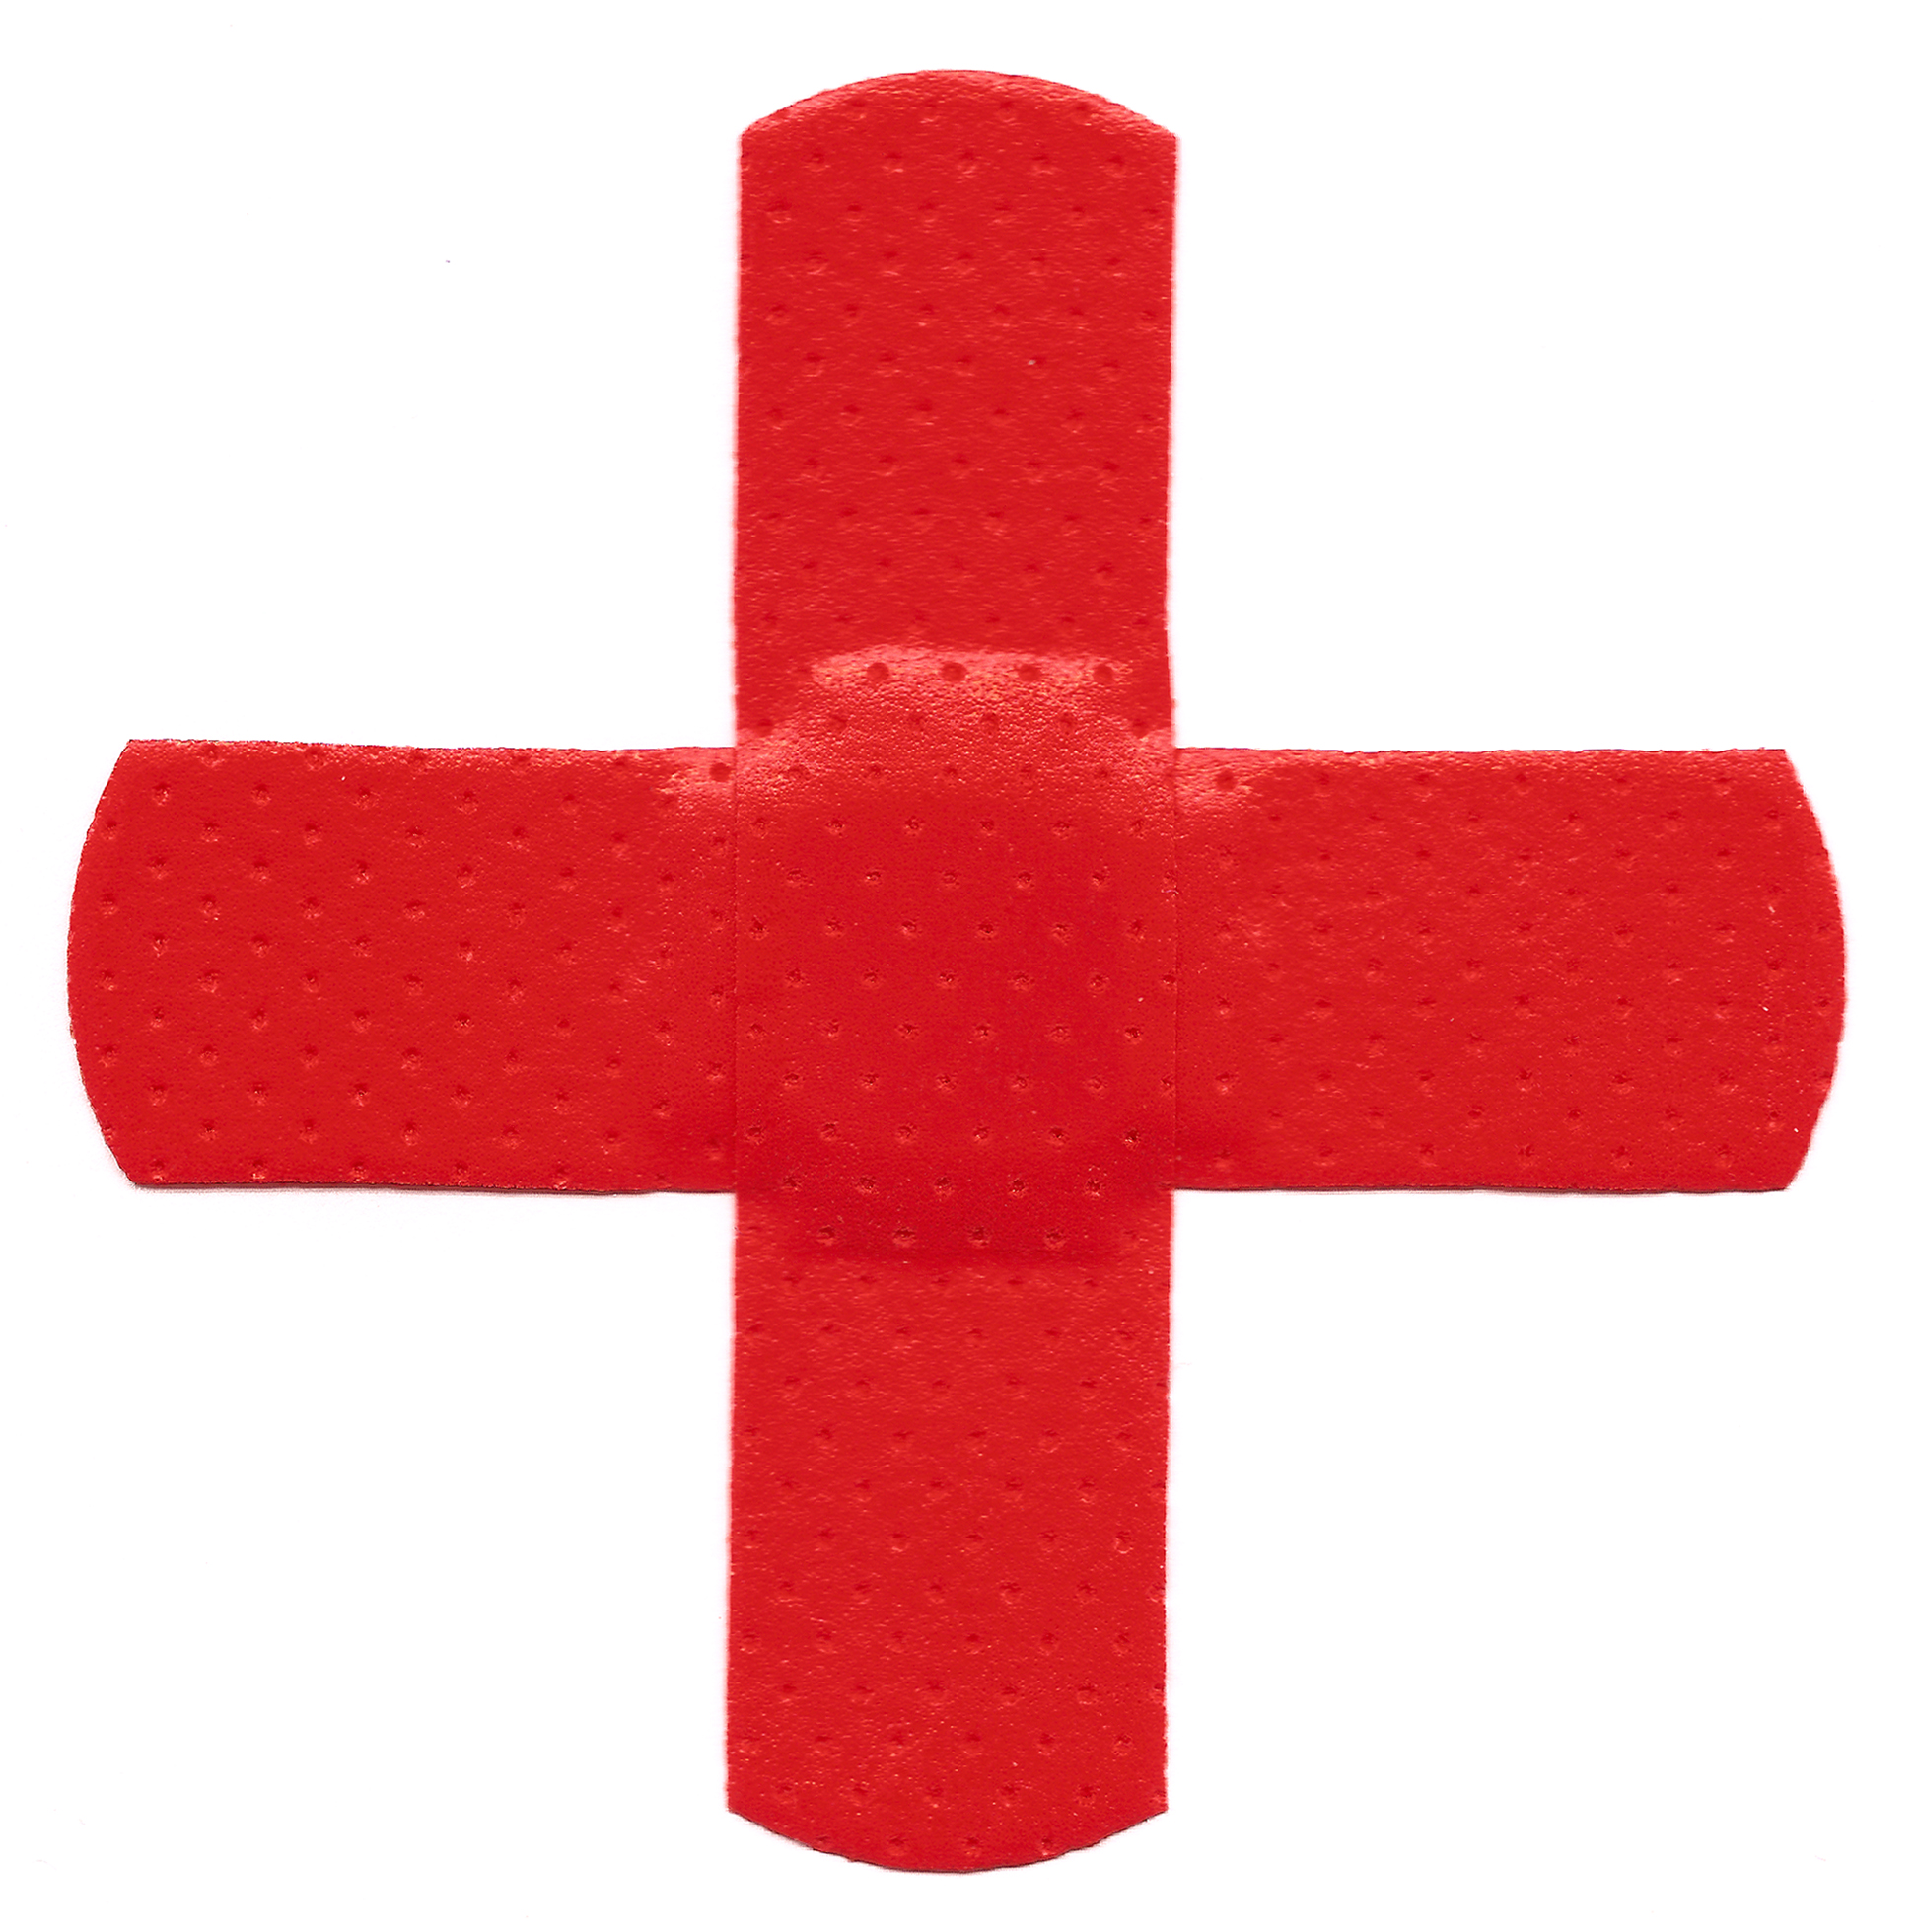 Red Cross Images - ClipArt Best